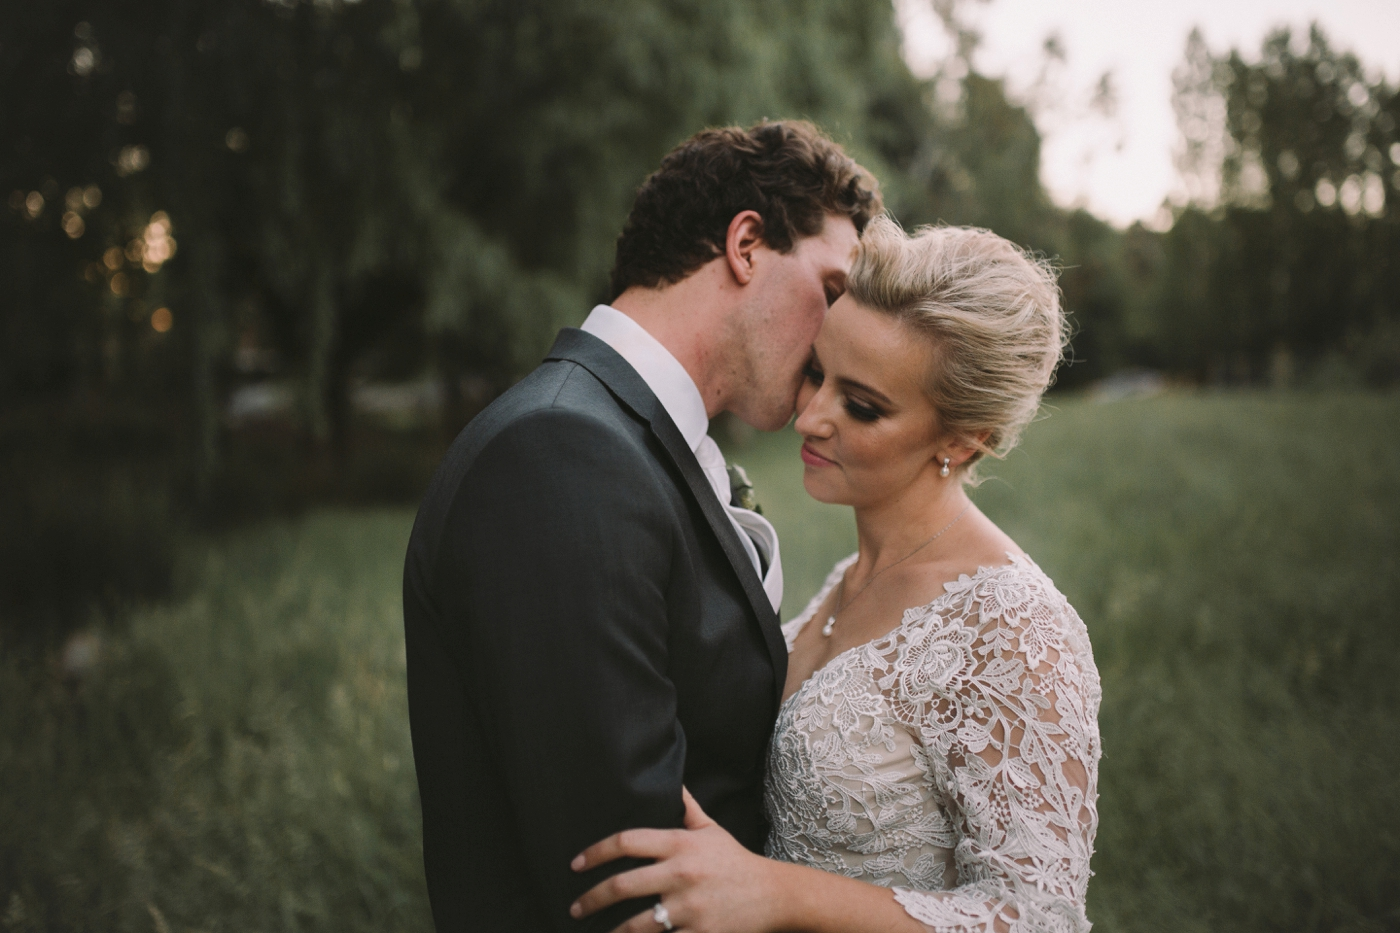 Penny and Michael - Adelaide Hills Wedding Photographer - Natural wedding photography in Adelaide - Katherine Schultz_0085.jpg